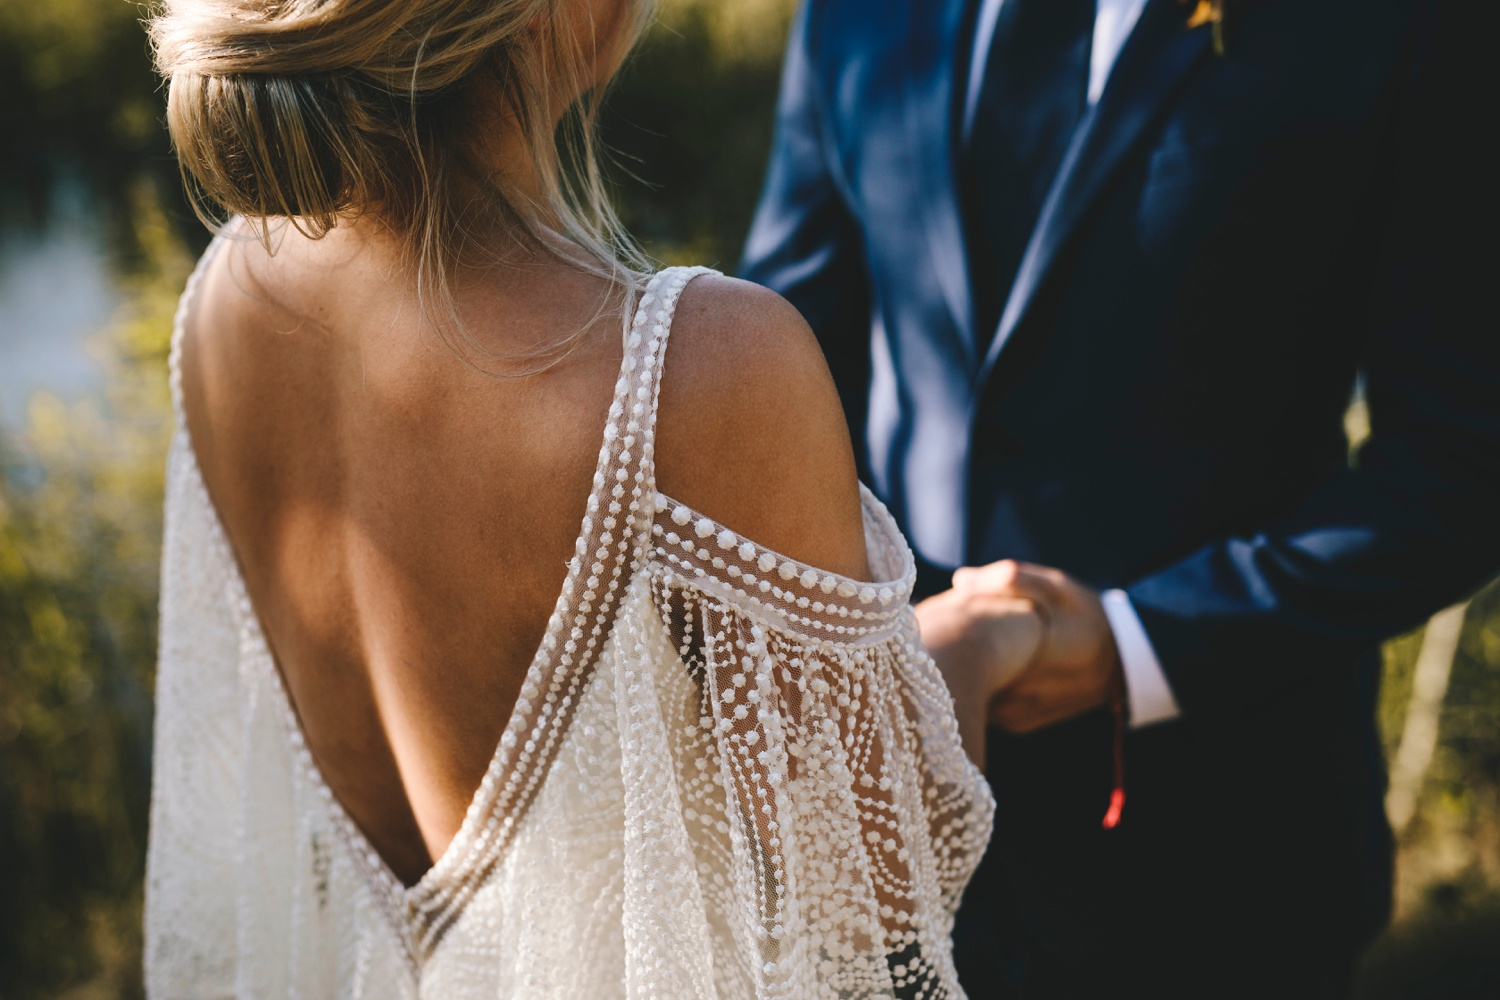 charlie_ray_photography_runaway_romance_elopement_emily_moon_plett_simple_boho_wedding_south_africa_bohemium_0073.jpg